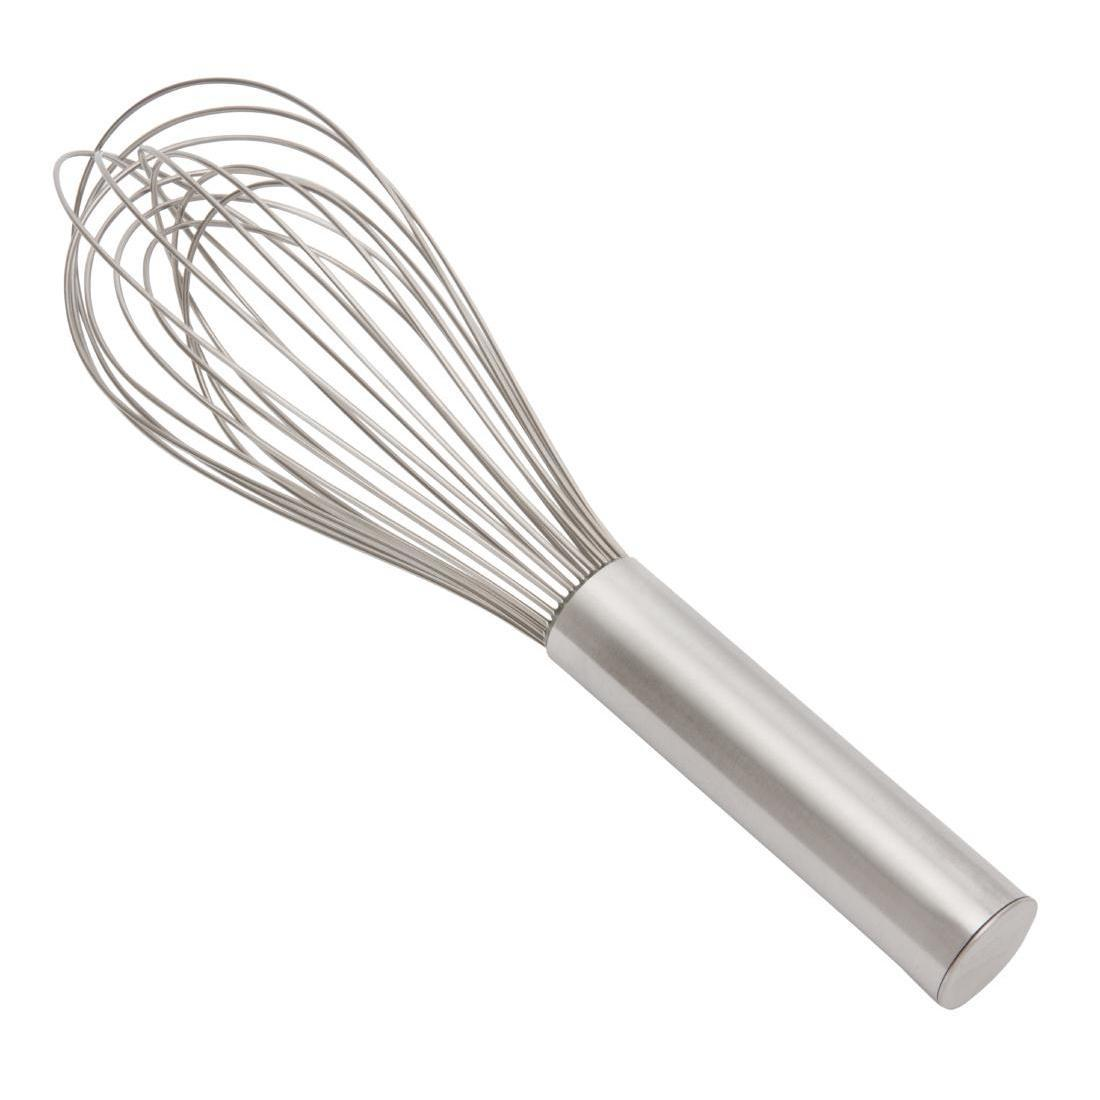 "Vogue Light Whisk 10"" - Each - K550"